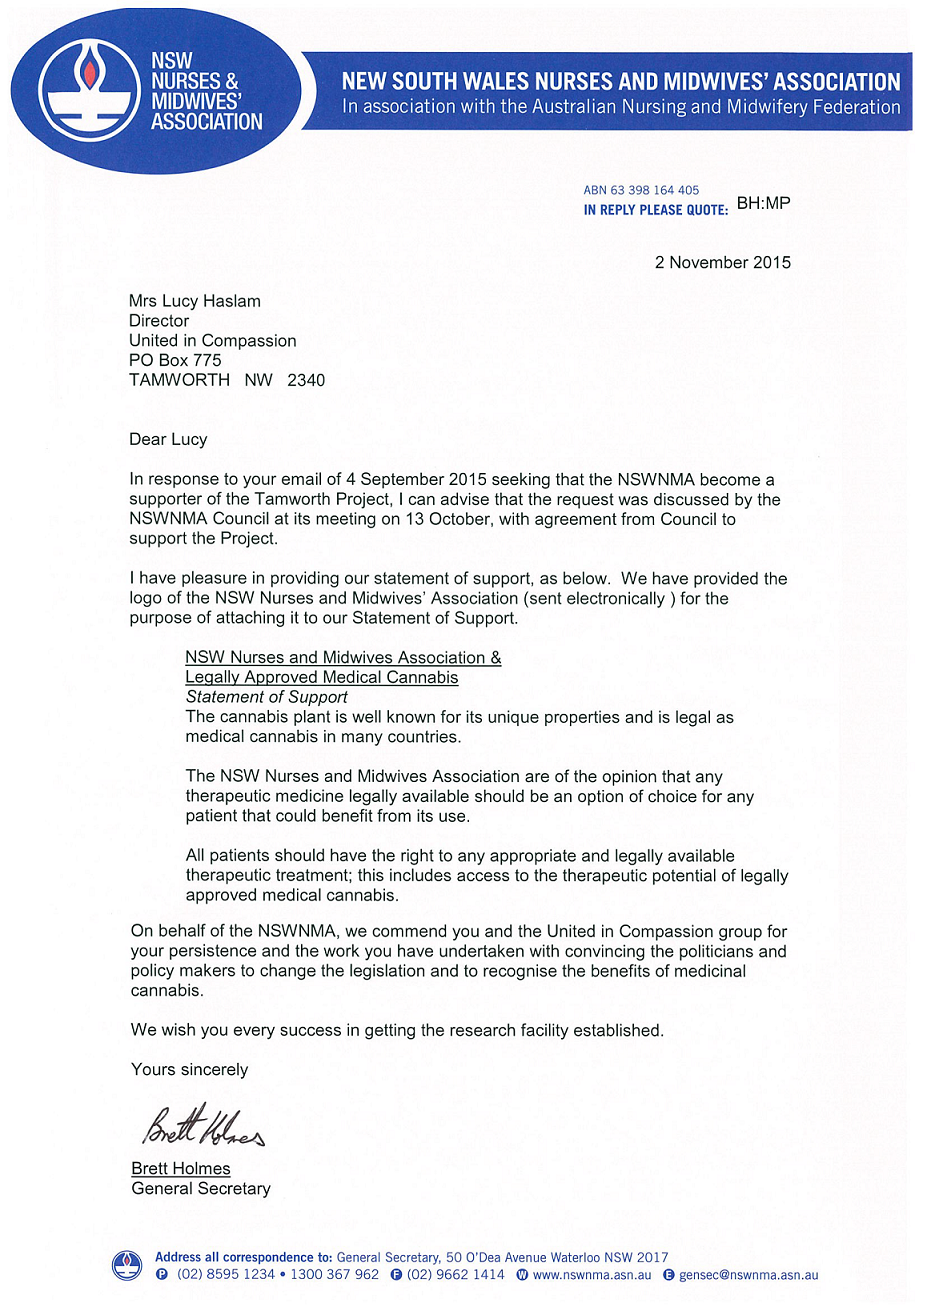 NSW Nurses & Midwives Association letter of support